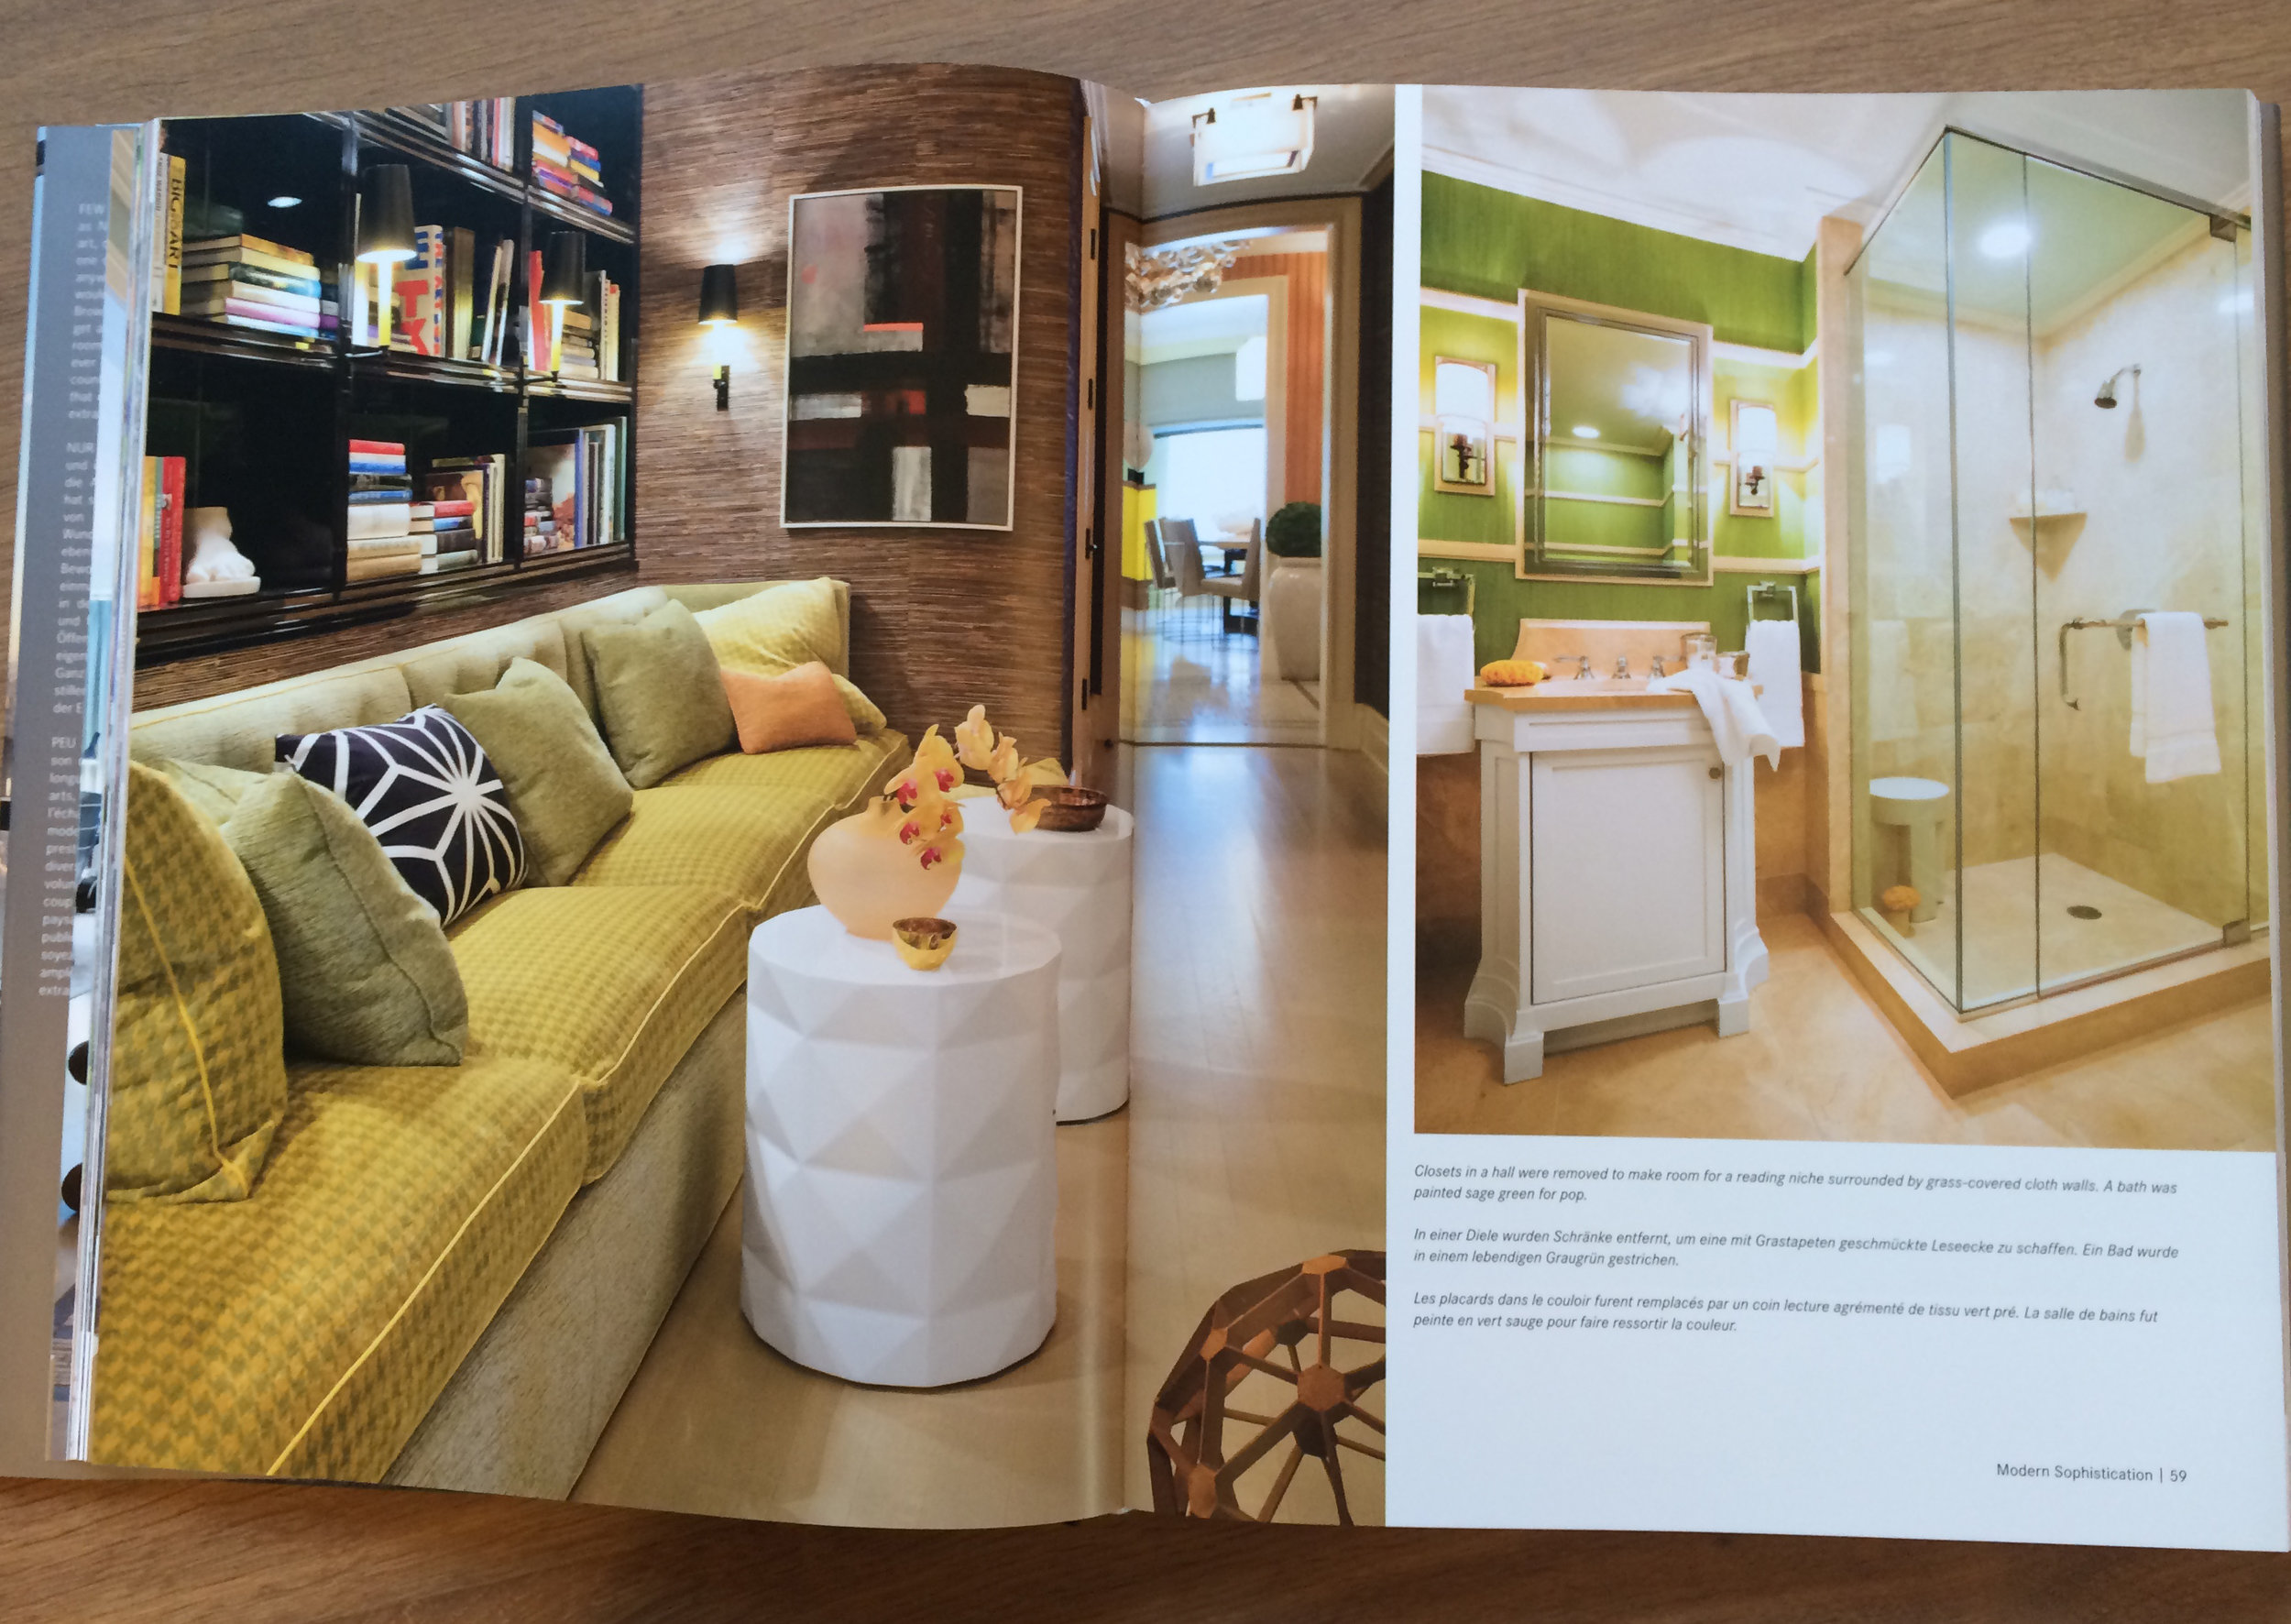 Living In Style New York Book 2014 - Page 2.JPG